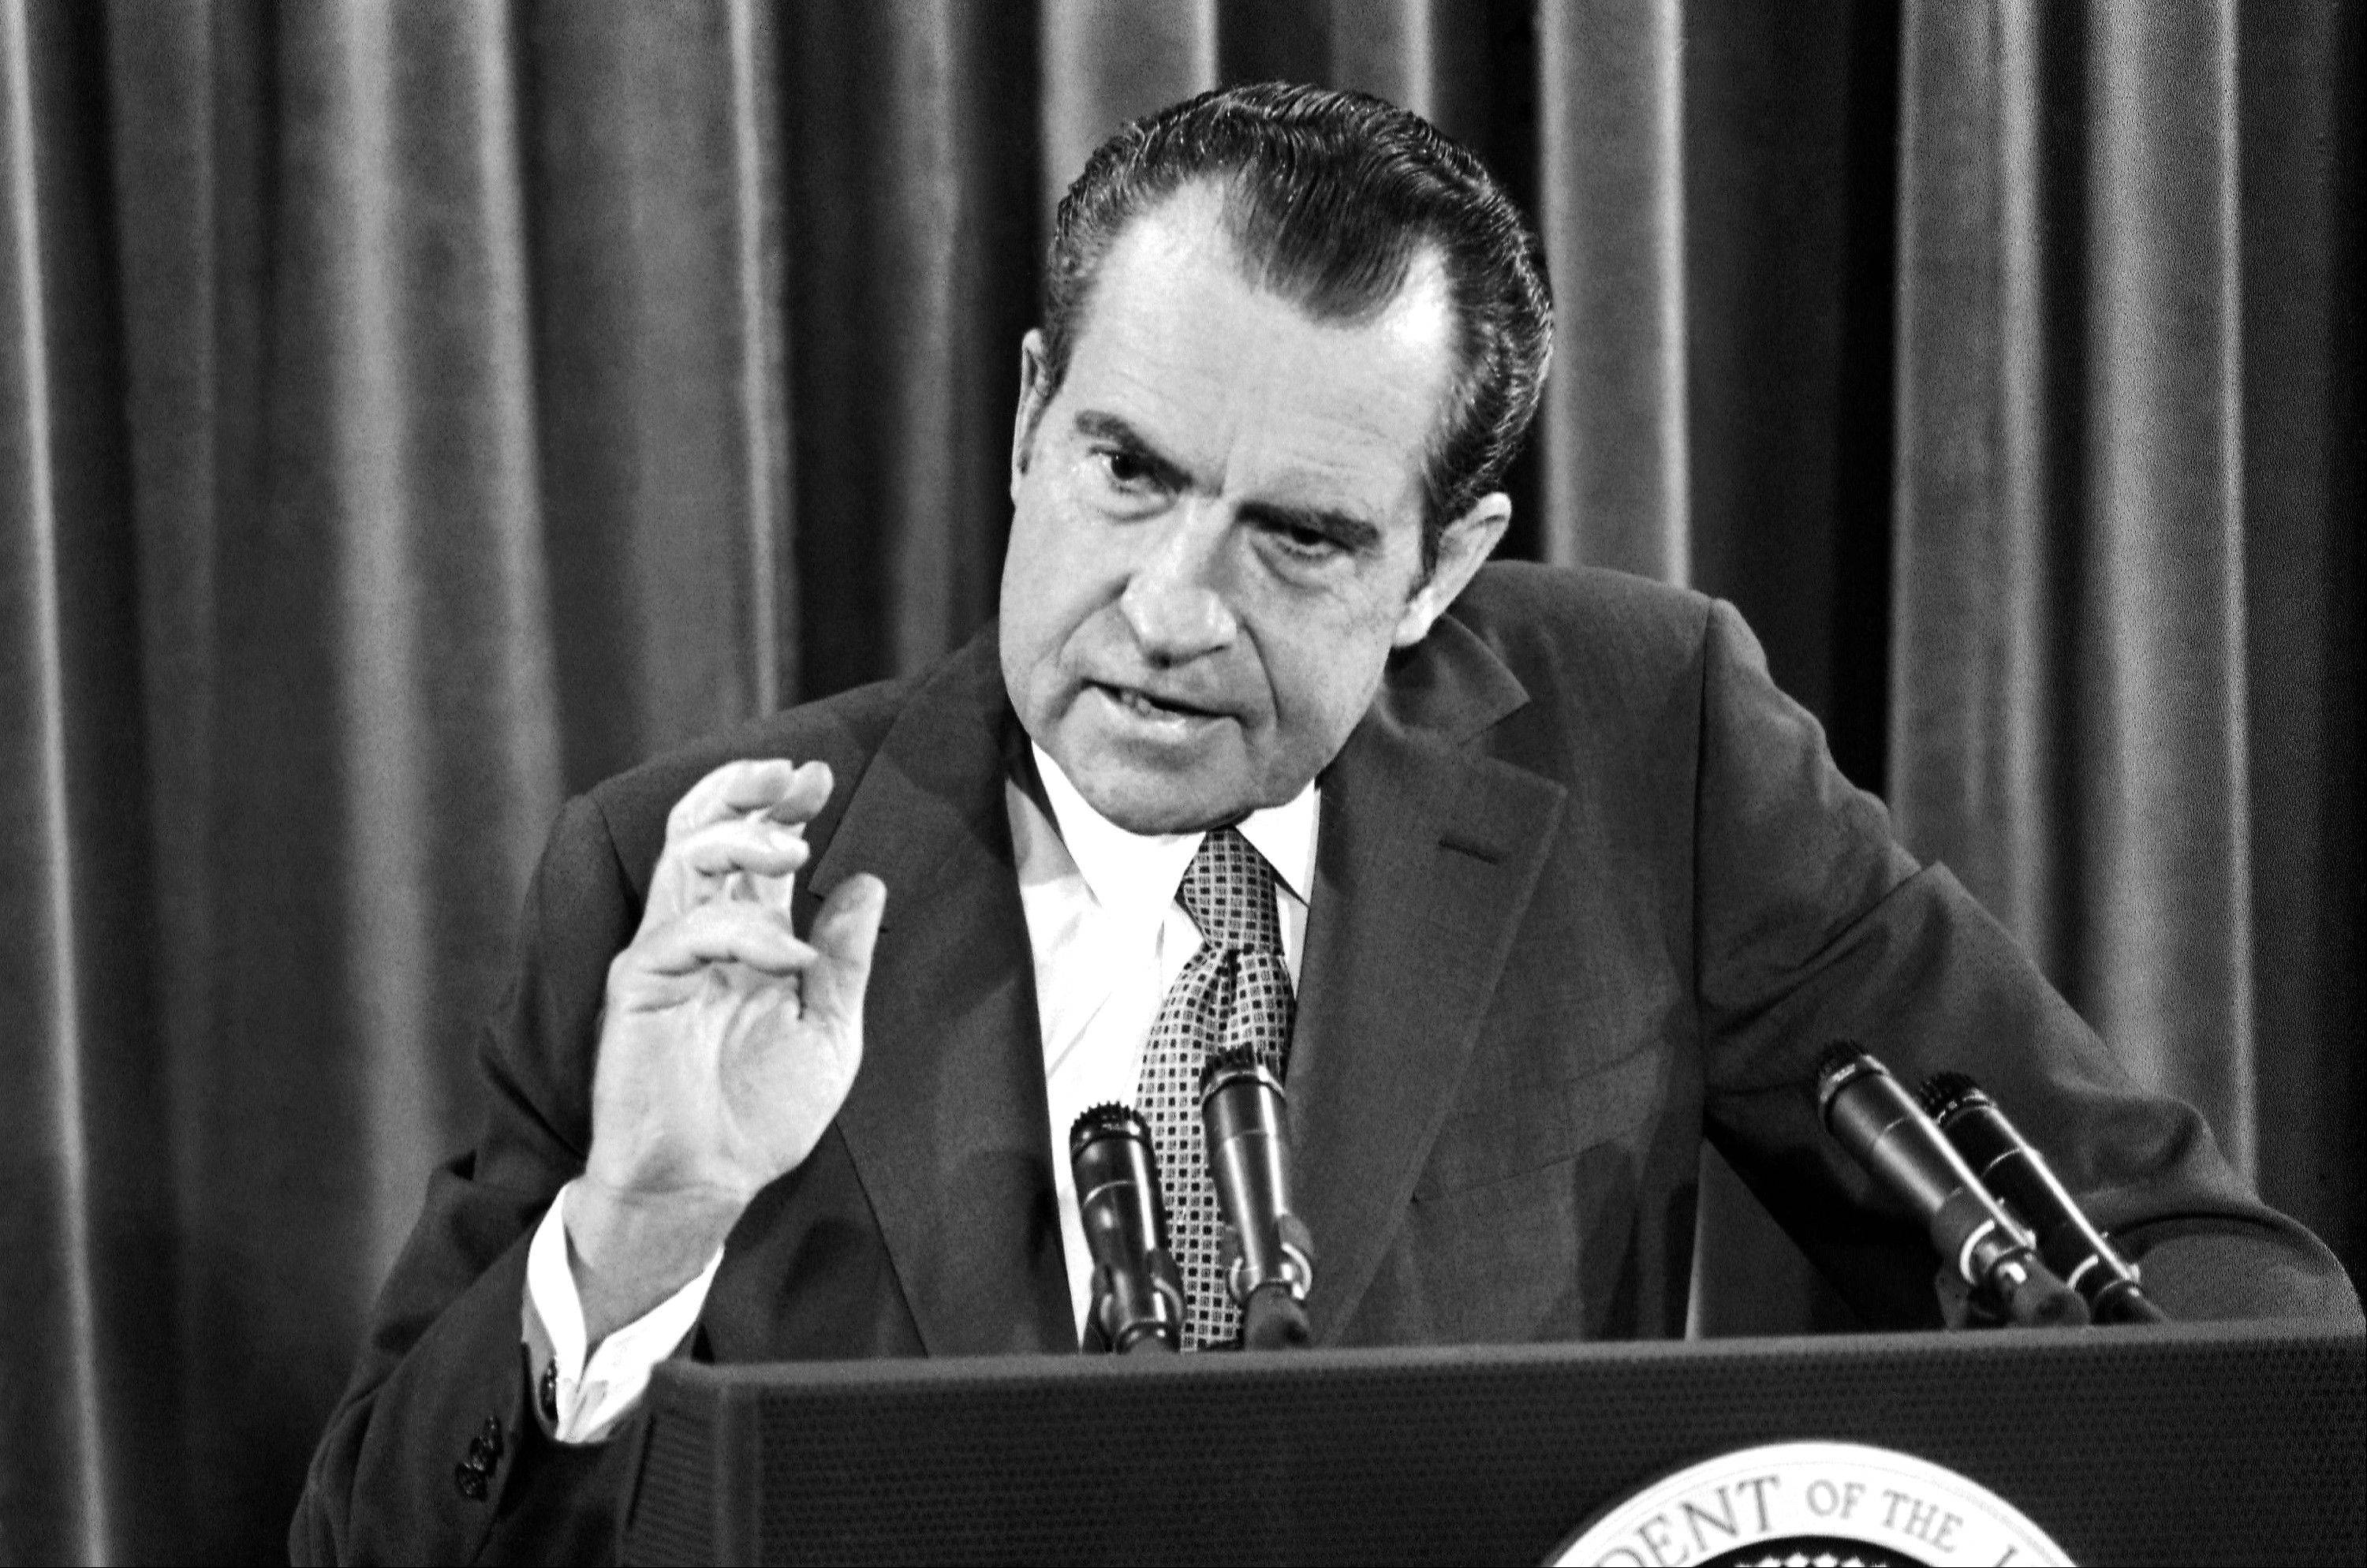 President Richard Nixon speaks at a White House news conference in Washington during which he said he'd sign legislation banning Saturday night specials.